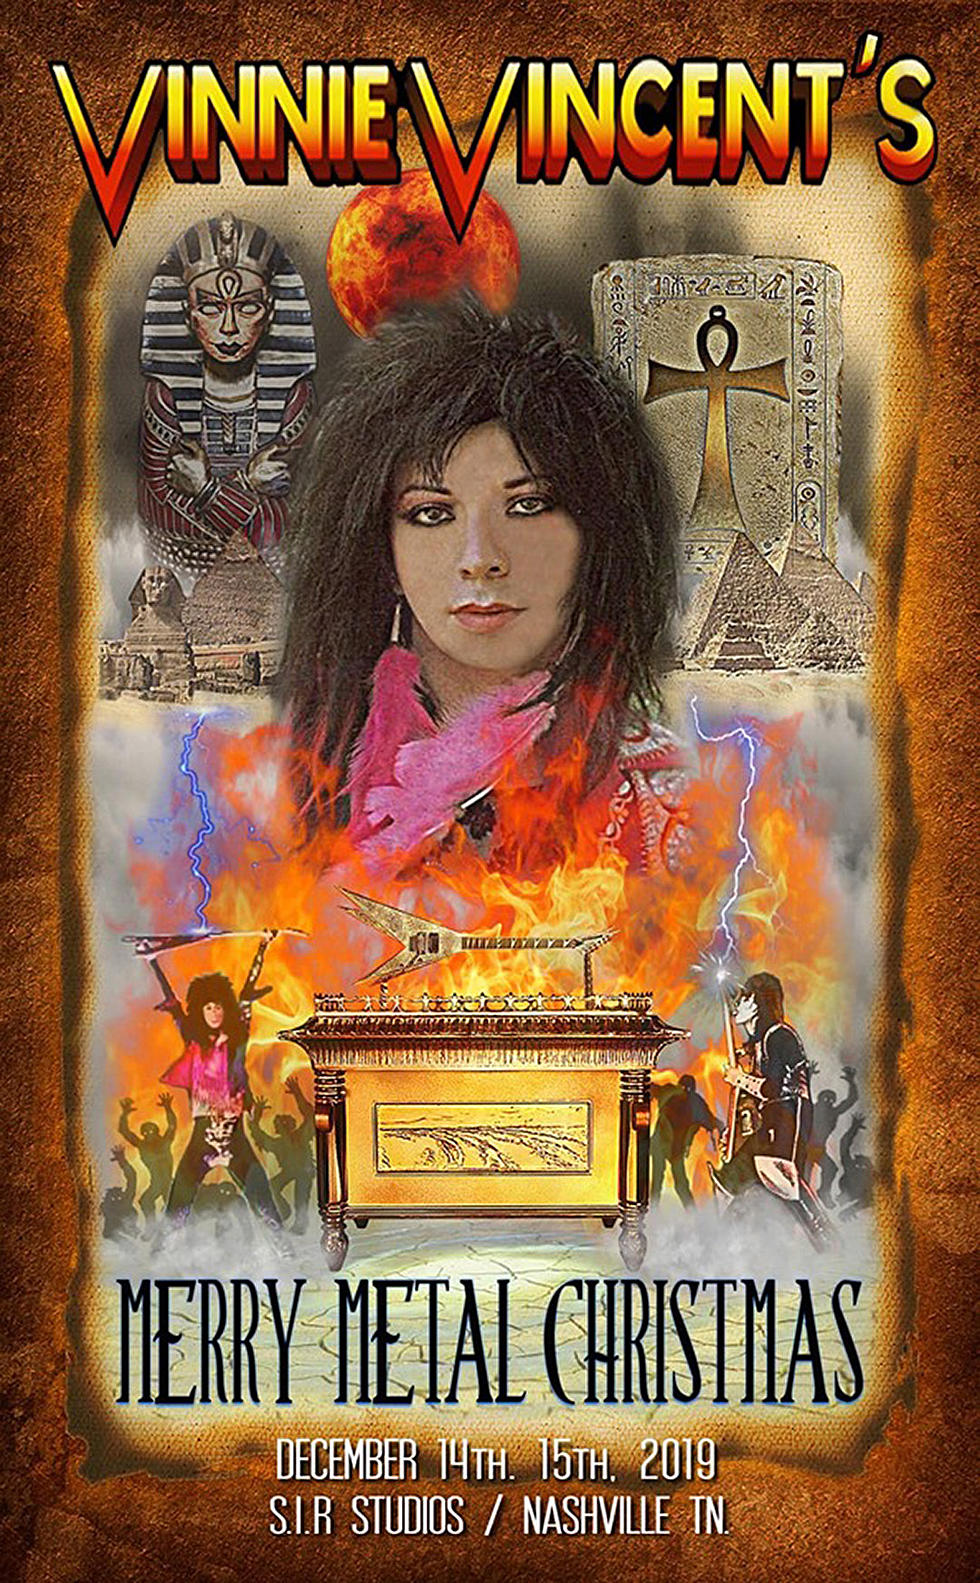 Vinnie Vincent Announces Merry Metal Christmas Event